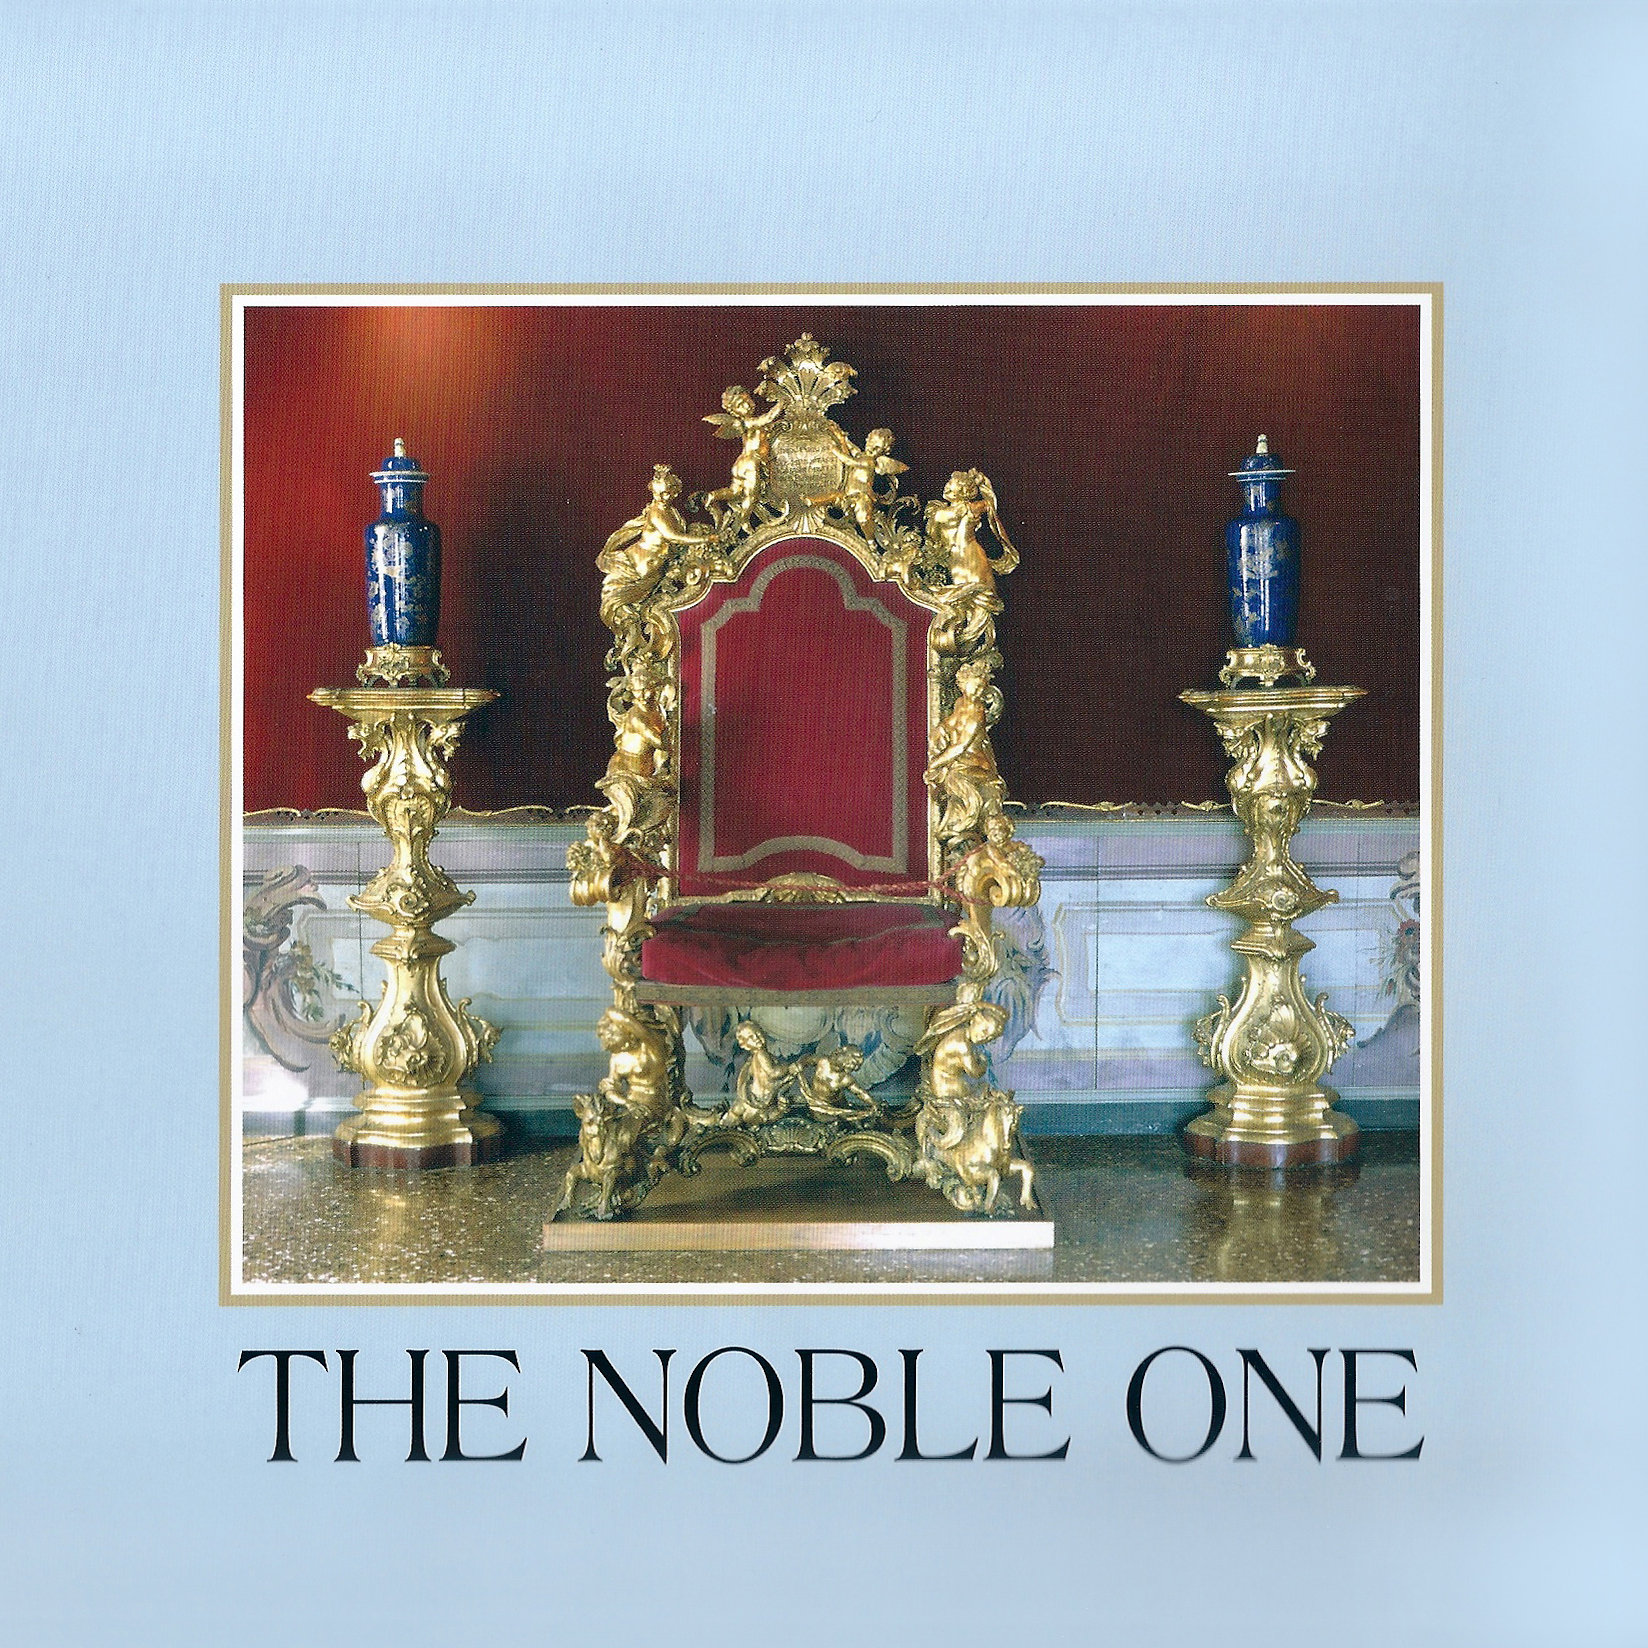 The Noble One An Intimate Glimpse Into The Life Of One Young Man,  Christopher Noble Ingrassia, Who Lost His Life On September 11, 2001 At The  World Trade ...